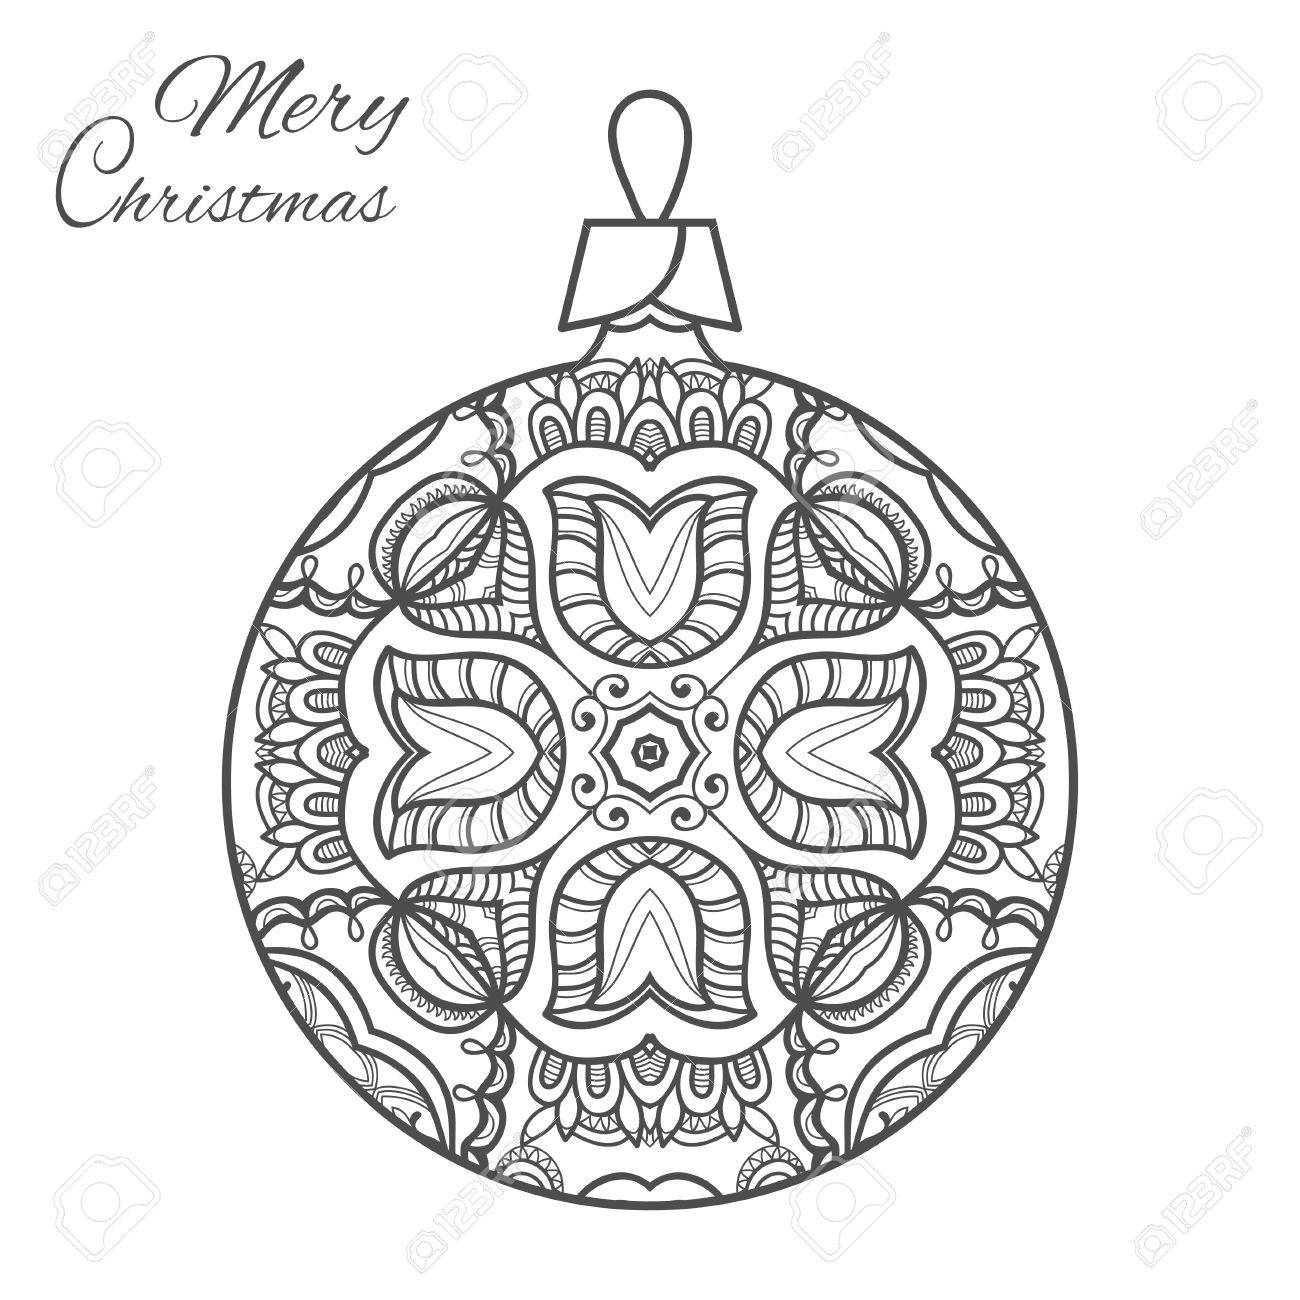 Christmas Ball Zen Doodle Ornate Pattern New Year 2017 Vector Hand Drawn Artistic